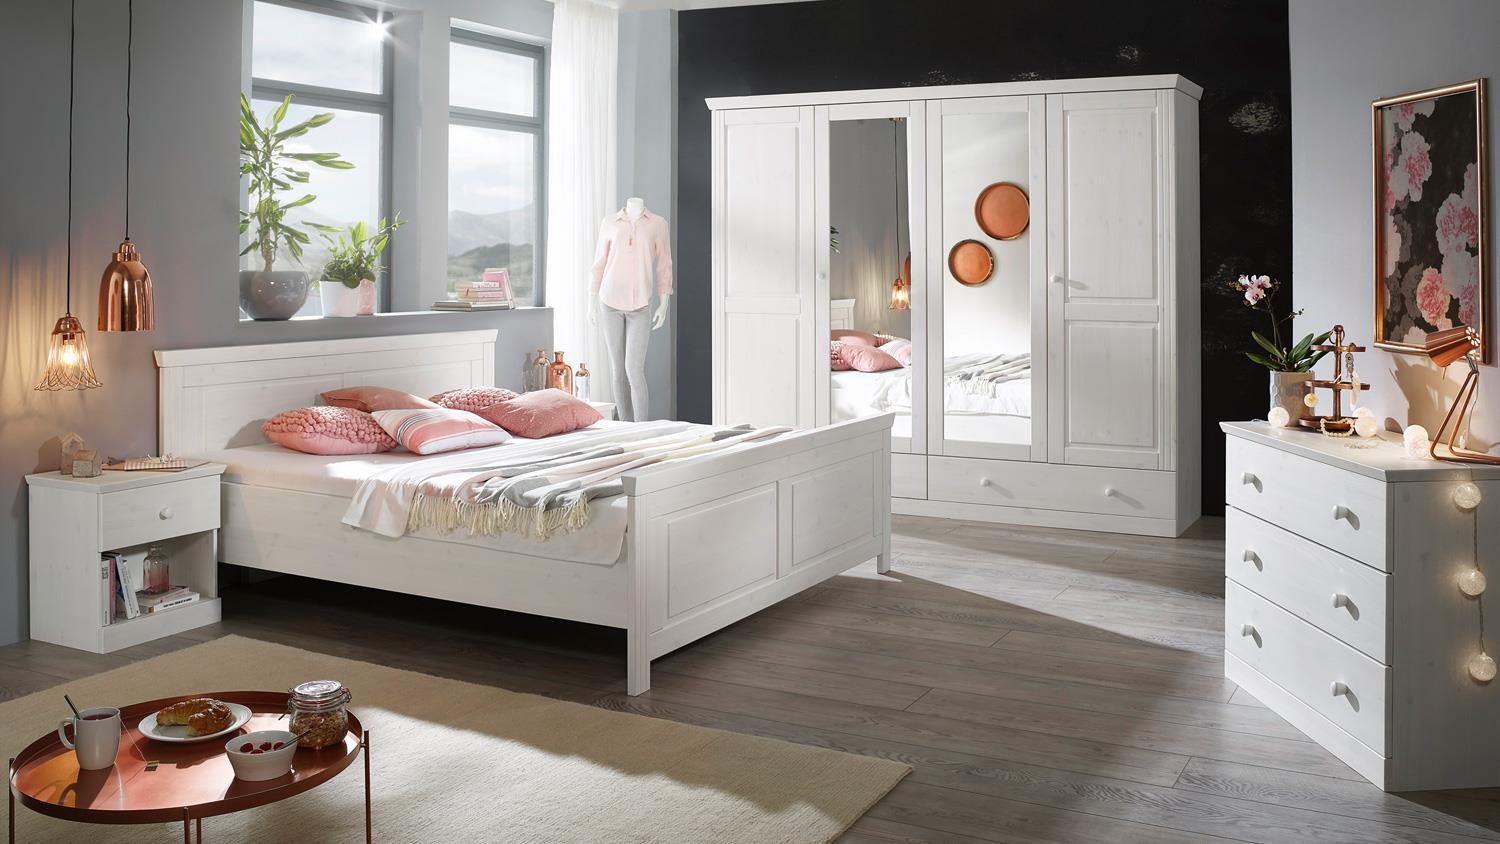 kommode genia kiefer massiv wei gewachst 3 schubk sten landhausstil. Black Bedroom Furniture Sets. Home Design Ideas